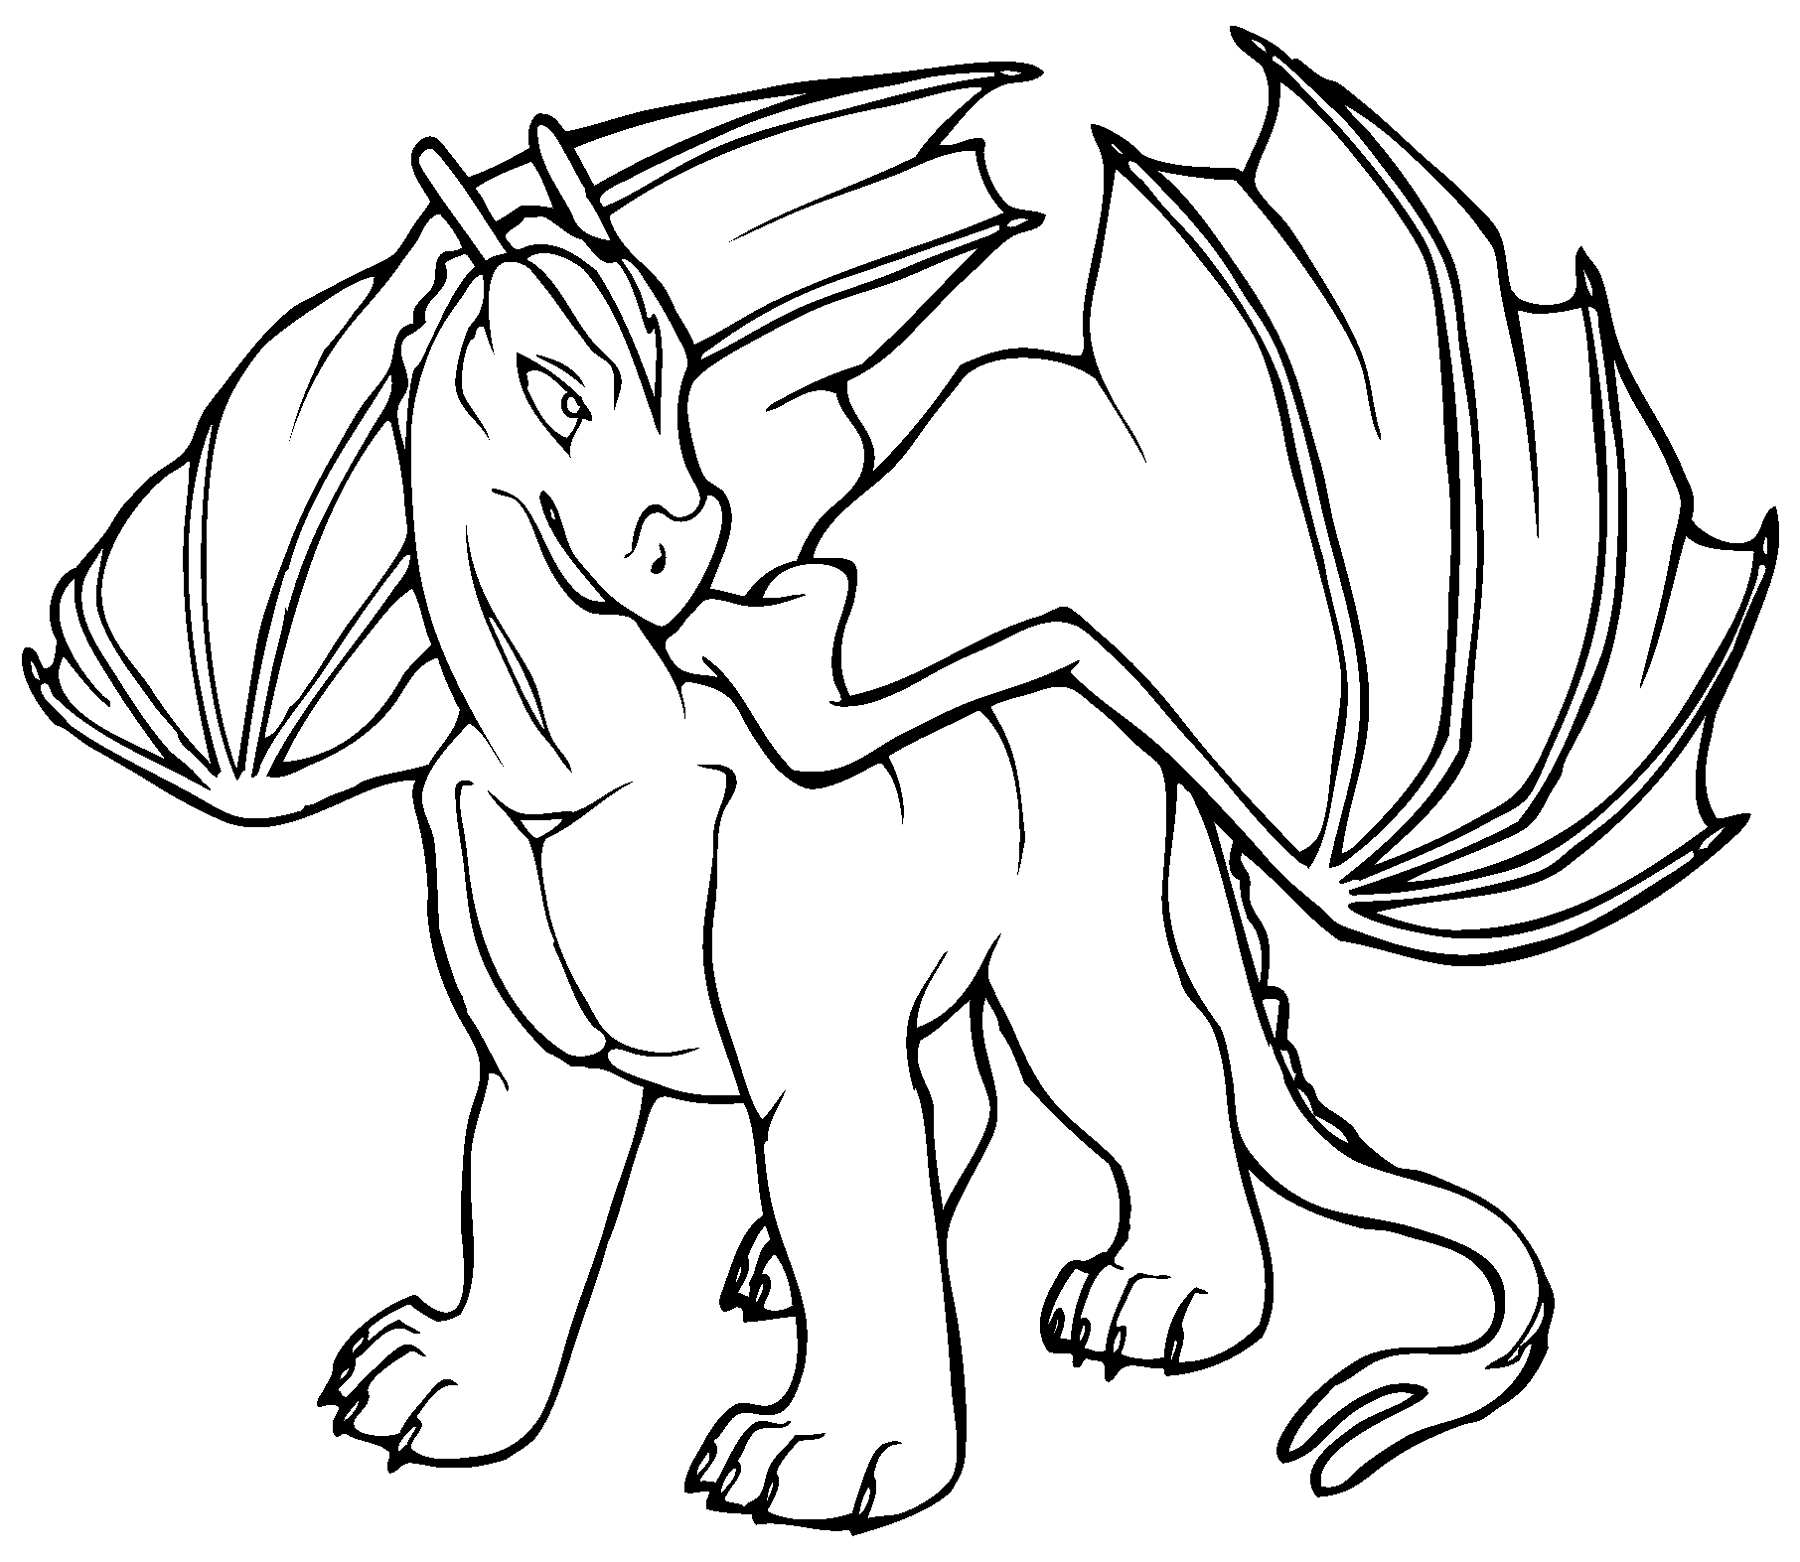 coloring kids pictures unicorn coloring pages to download and print for free kids pictures coloring